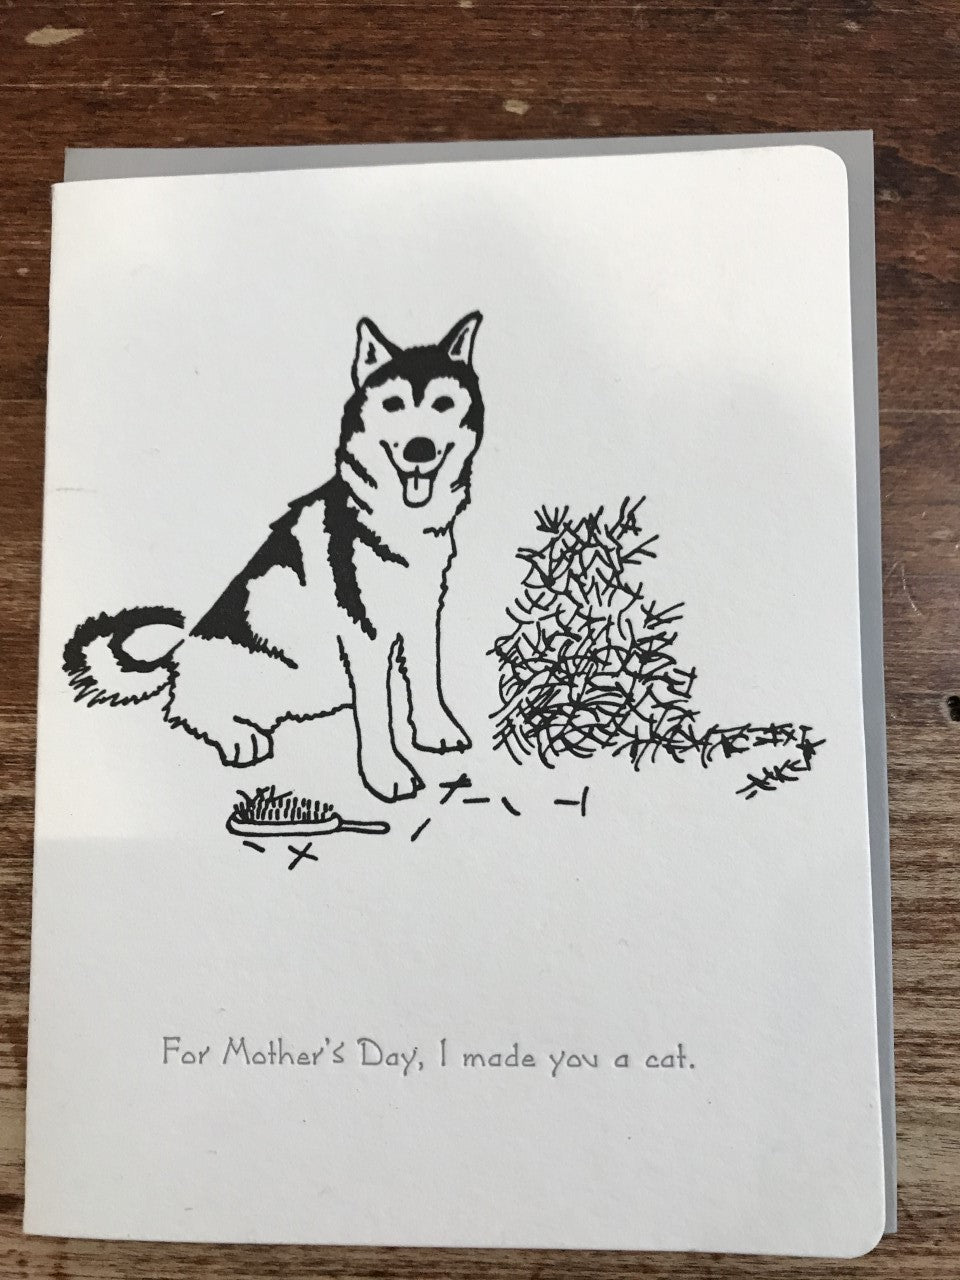 Dogwood Letterpress Mother's Day Card-Mother's Day Husky, Cat